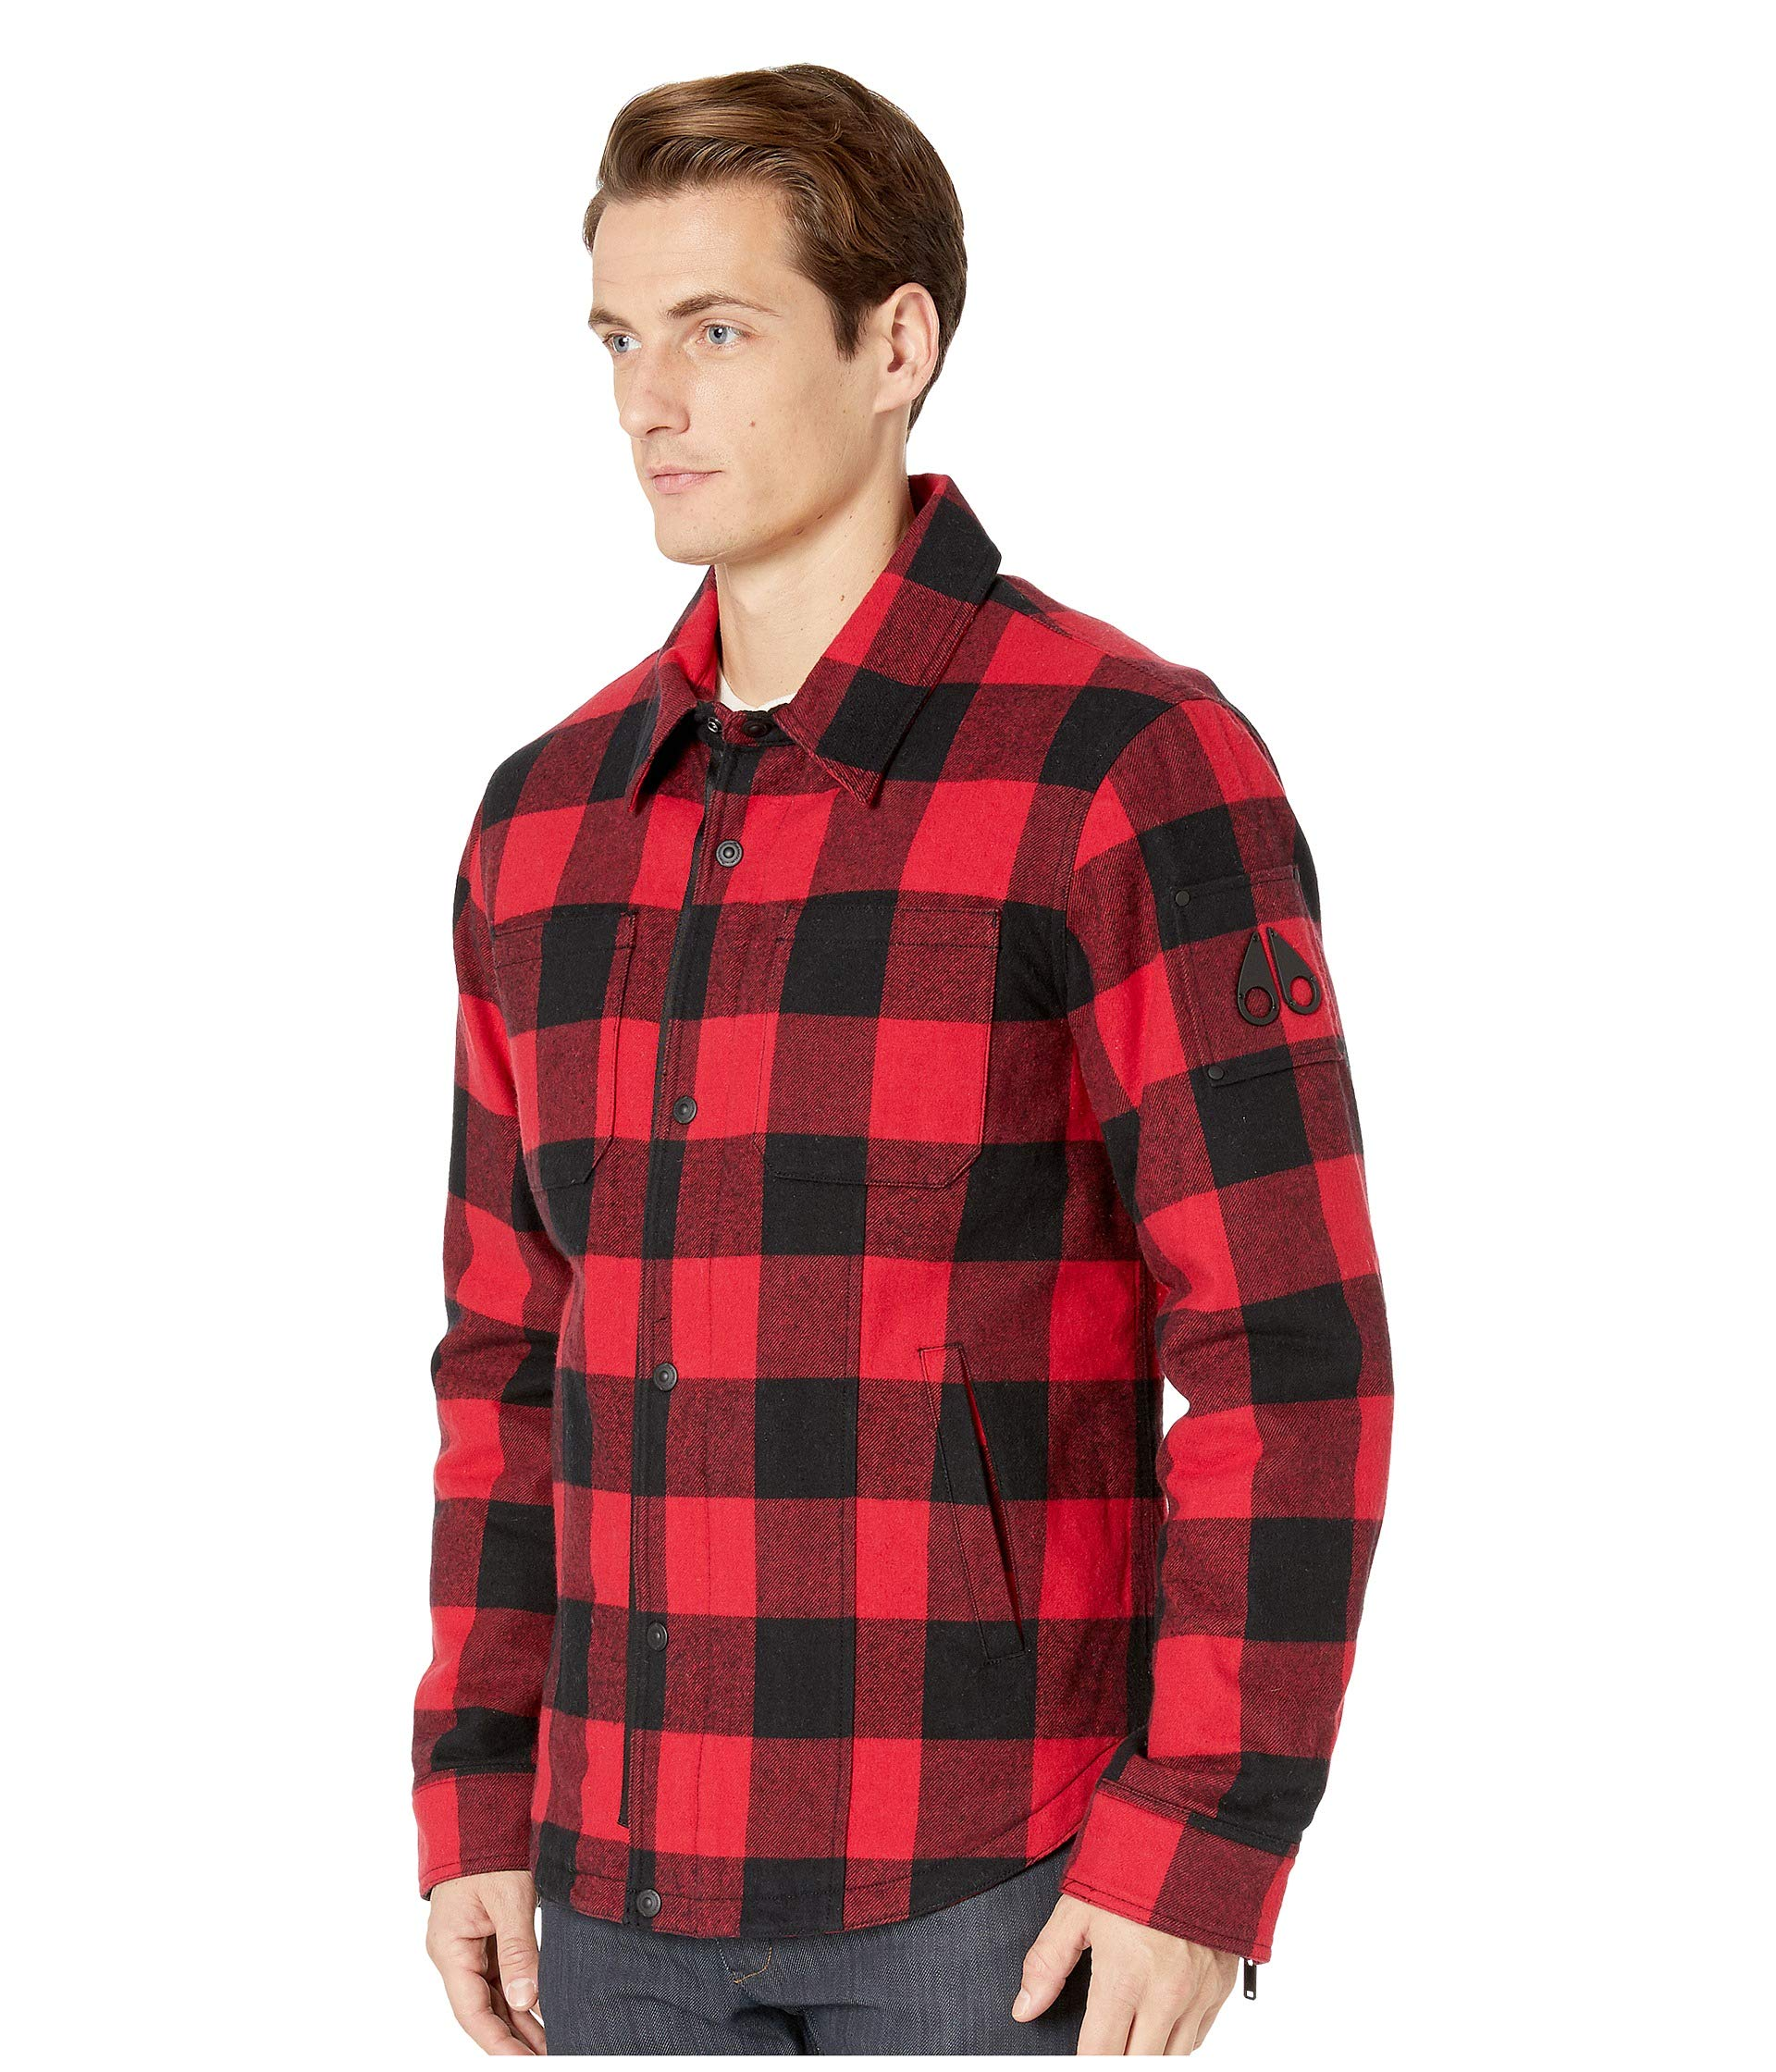 9e90e773d69 Moose Knuckles Ross Flannel Shirt Jacket at Luxury.Zappos.com